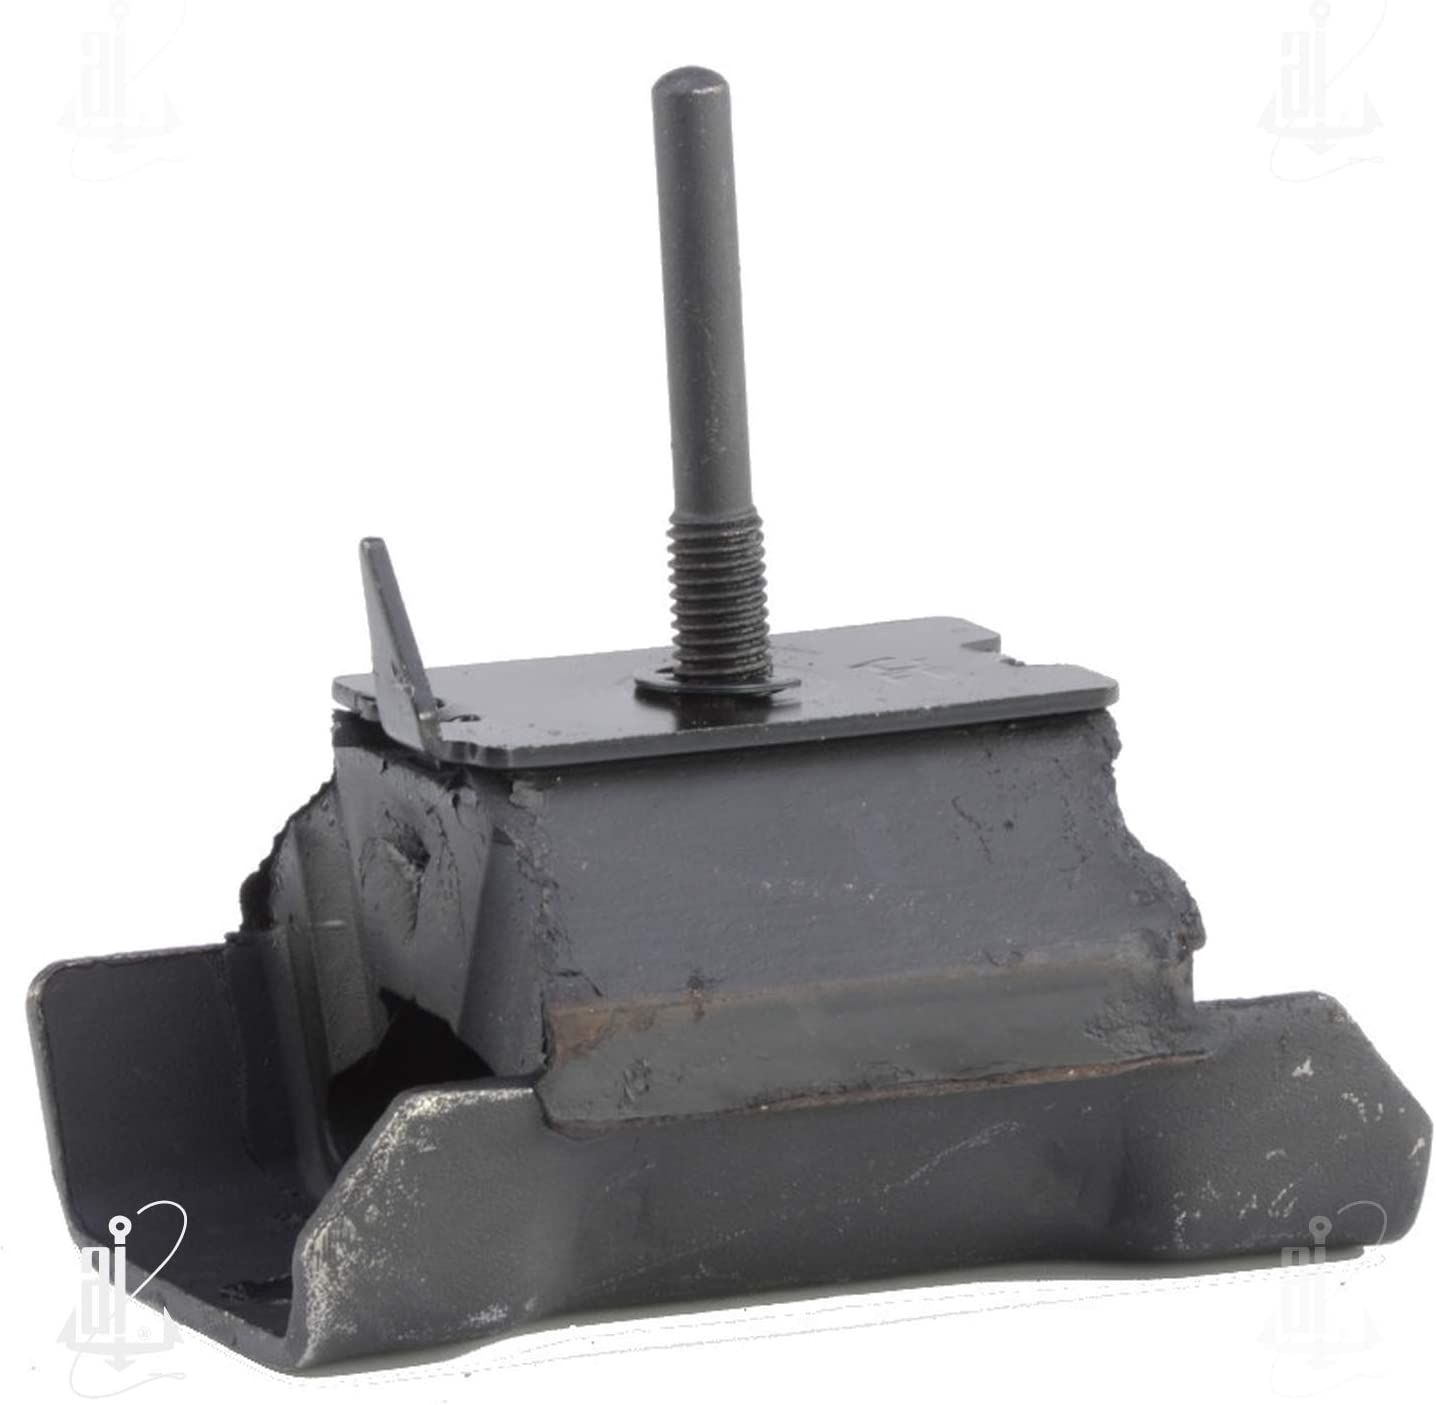 free Anchor Max 76% OFF 3098 Transmission Mount